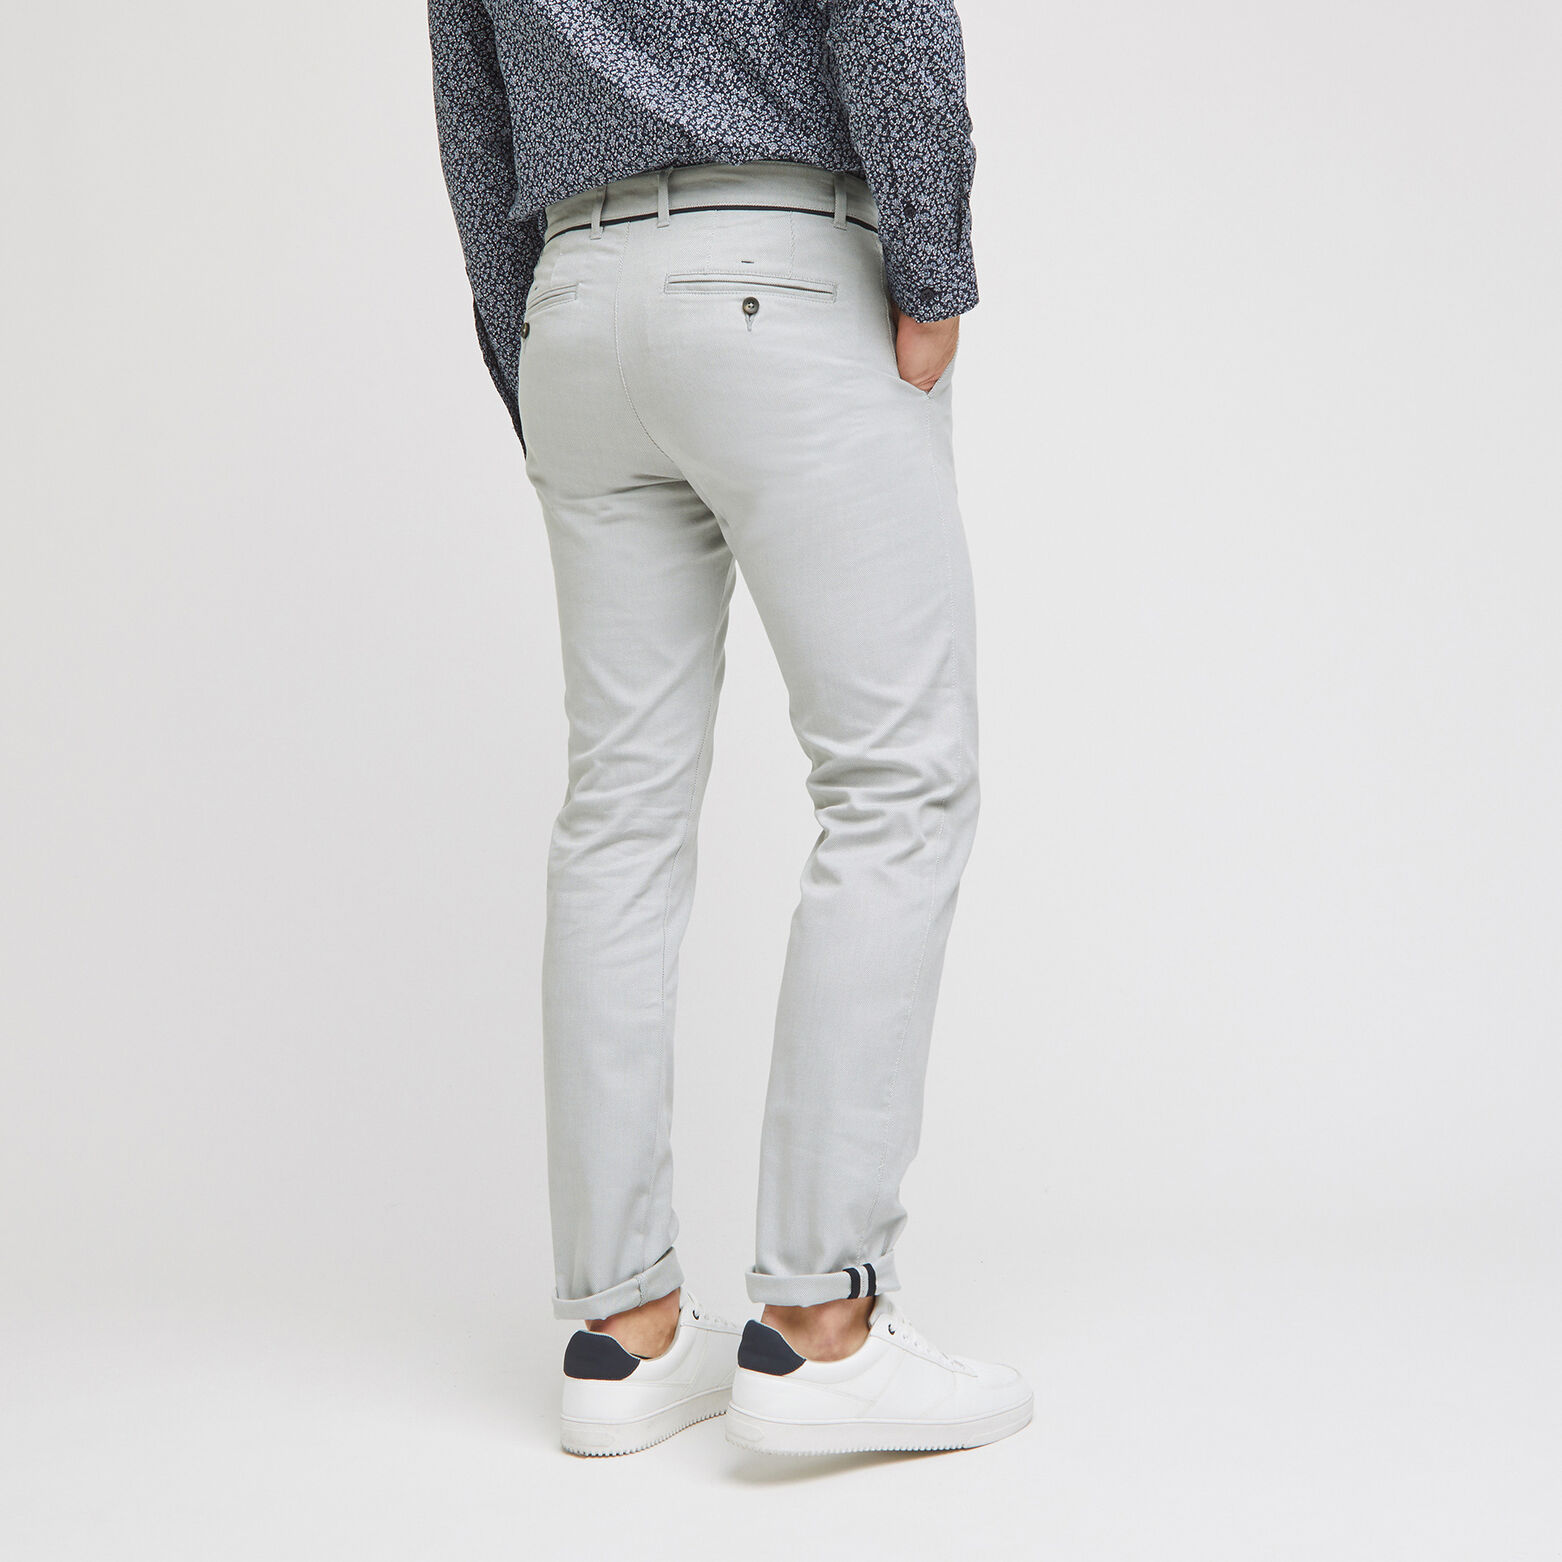 Pantalon chino slim fantaisie